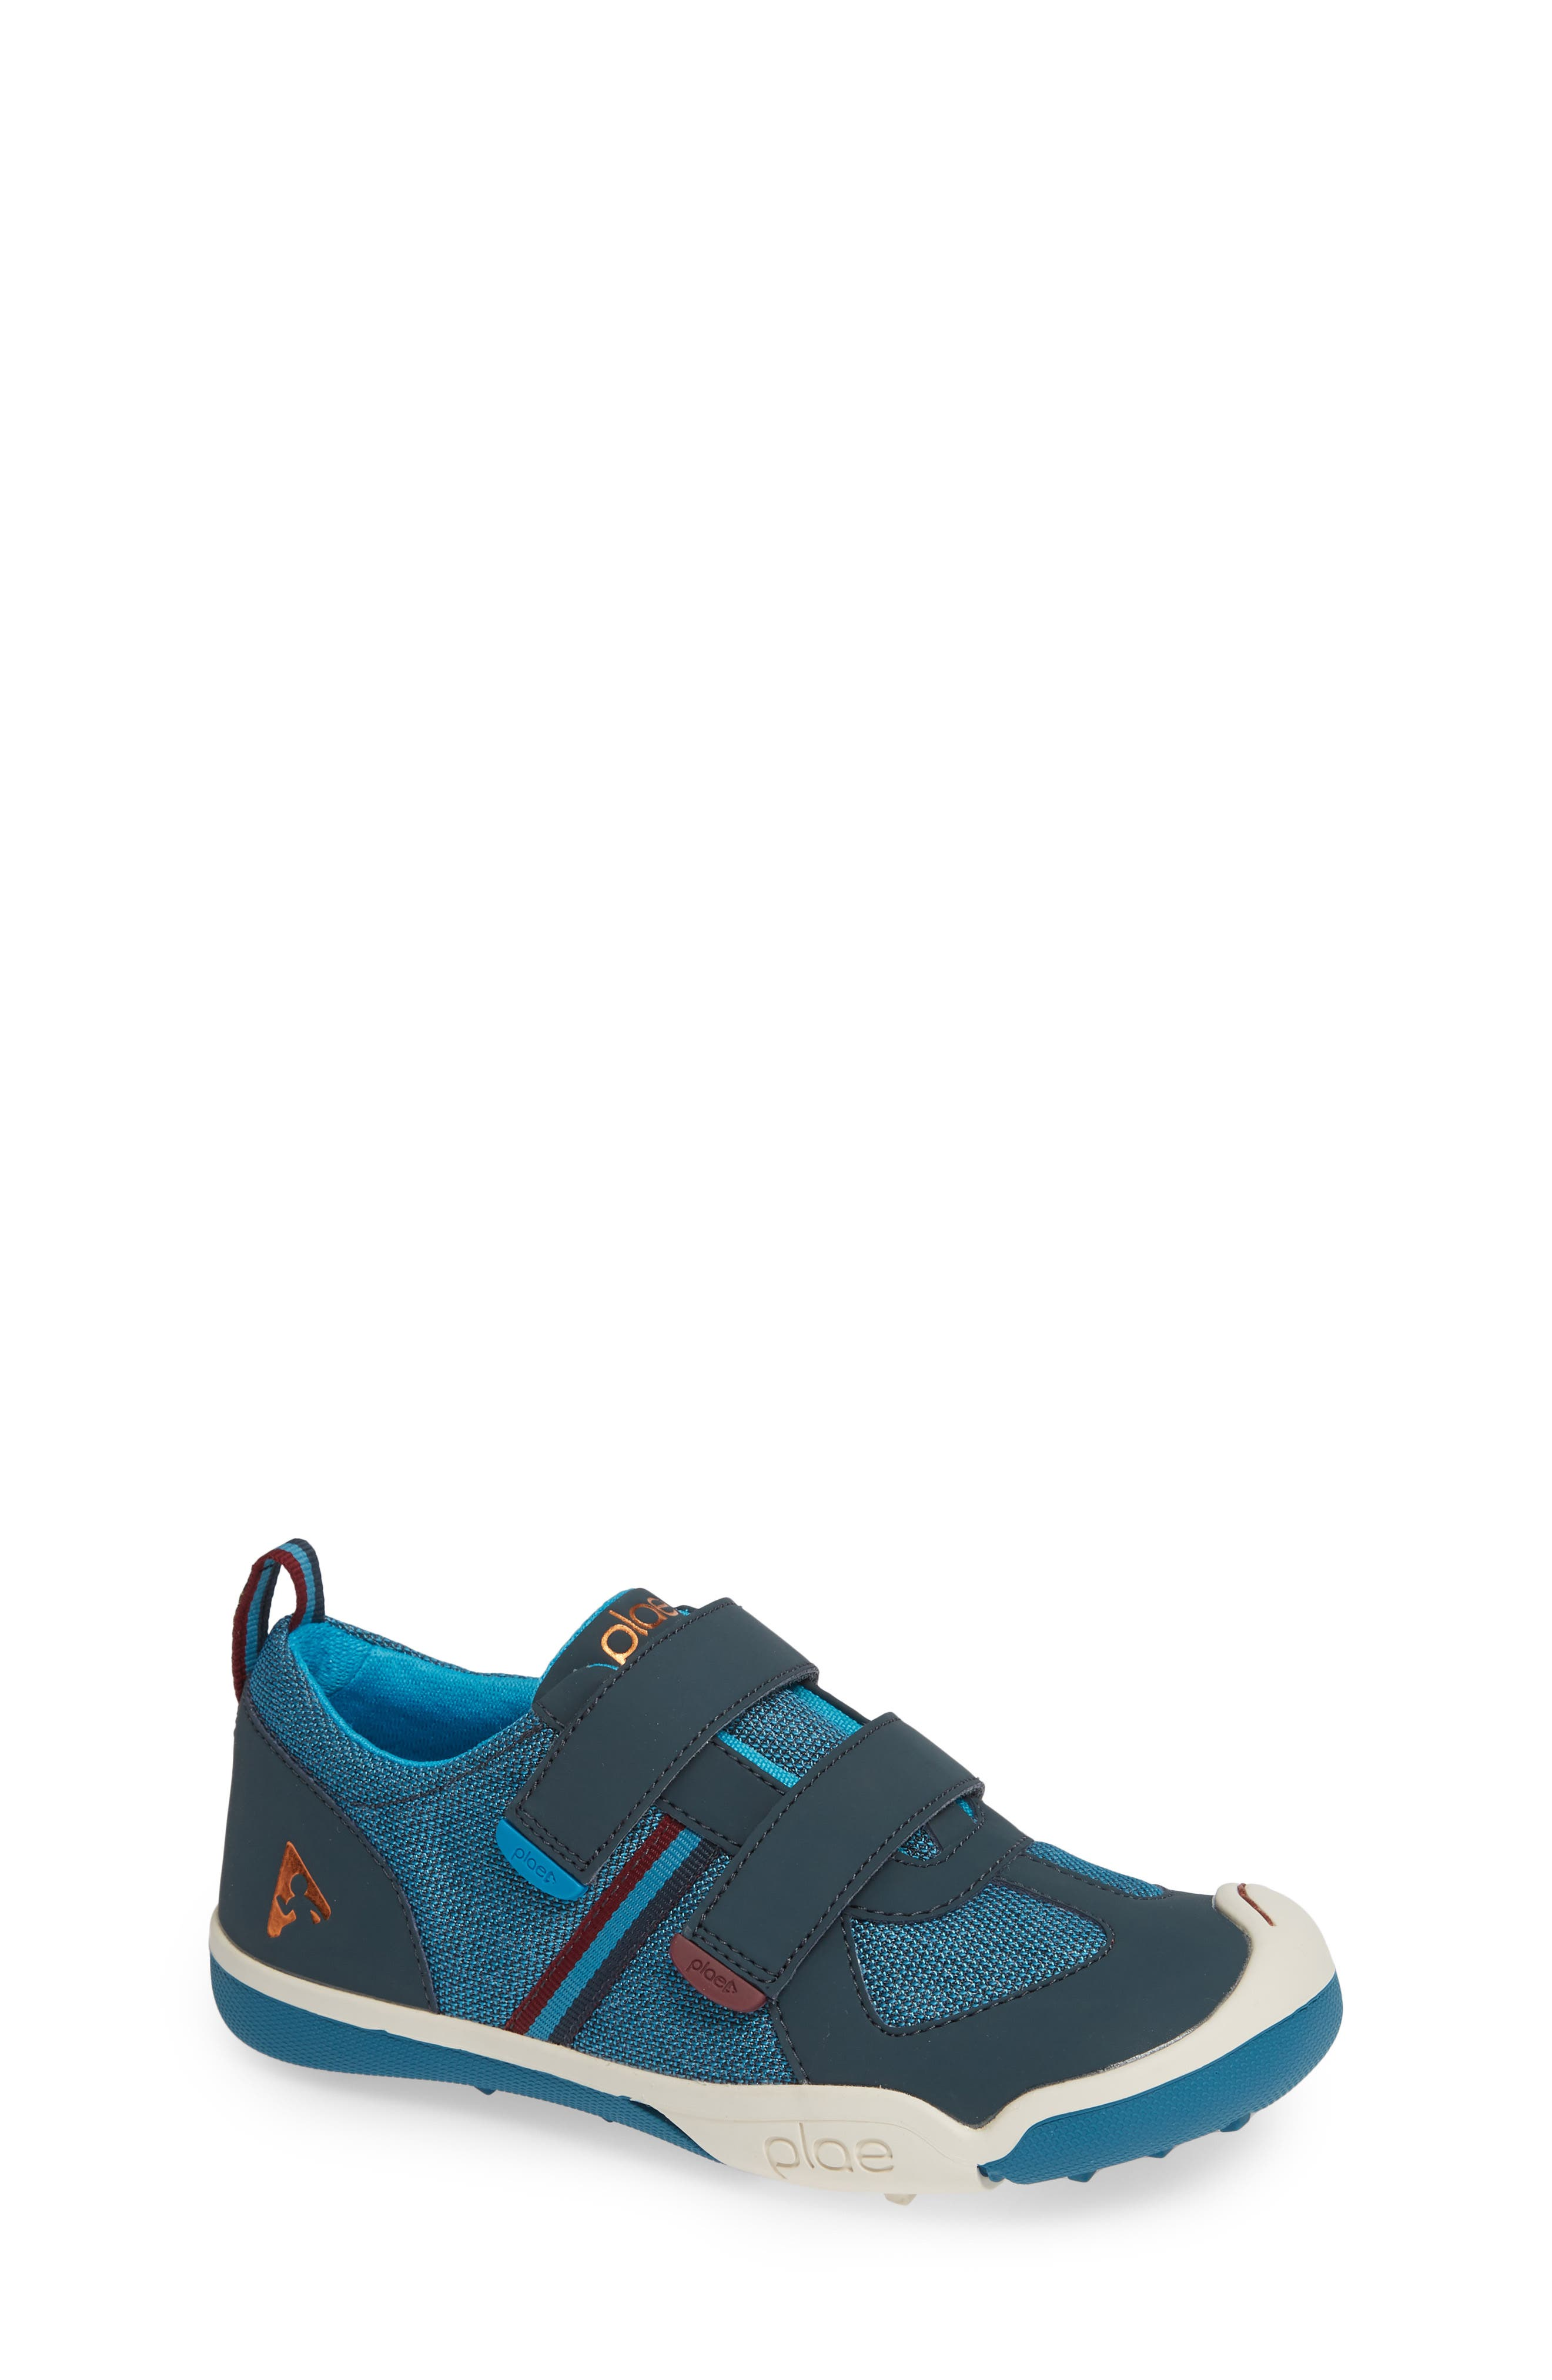 Charlie Customizable Sneaker,                             Main thumbnail 1, color,                             BLUE MARLIN